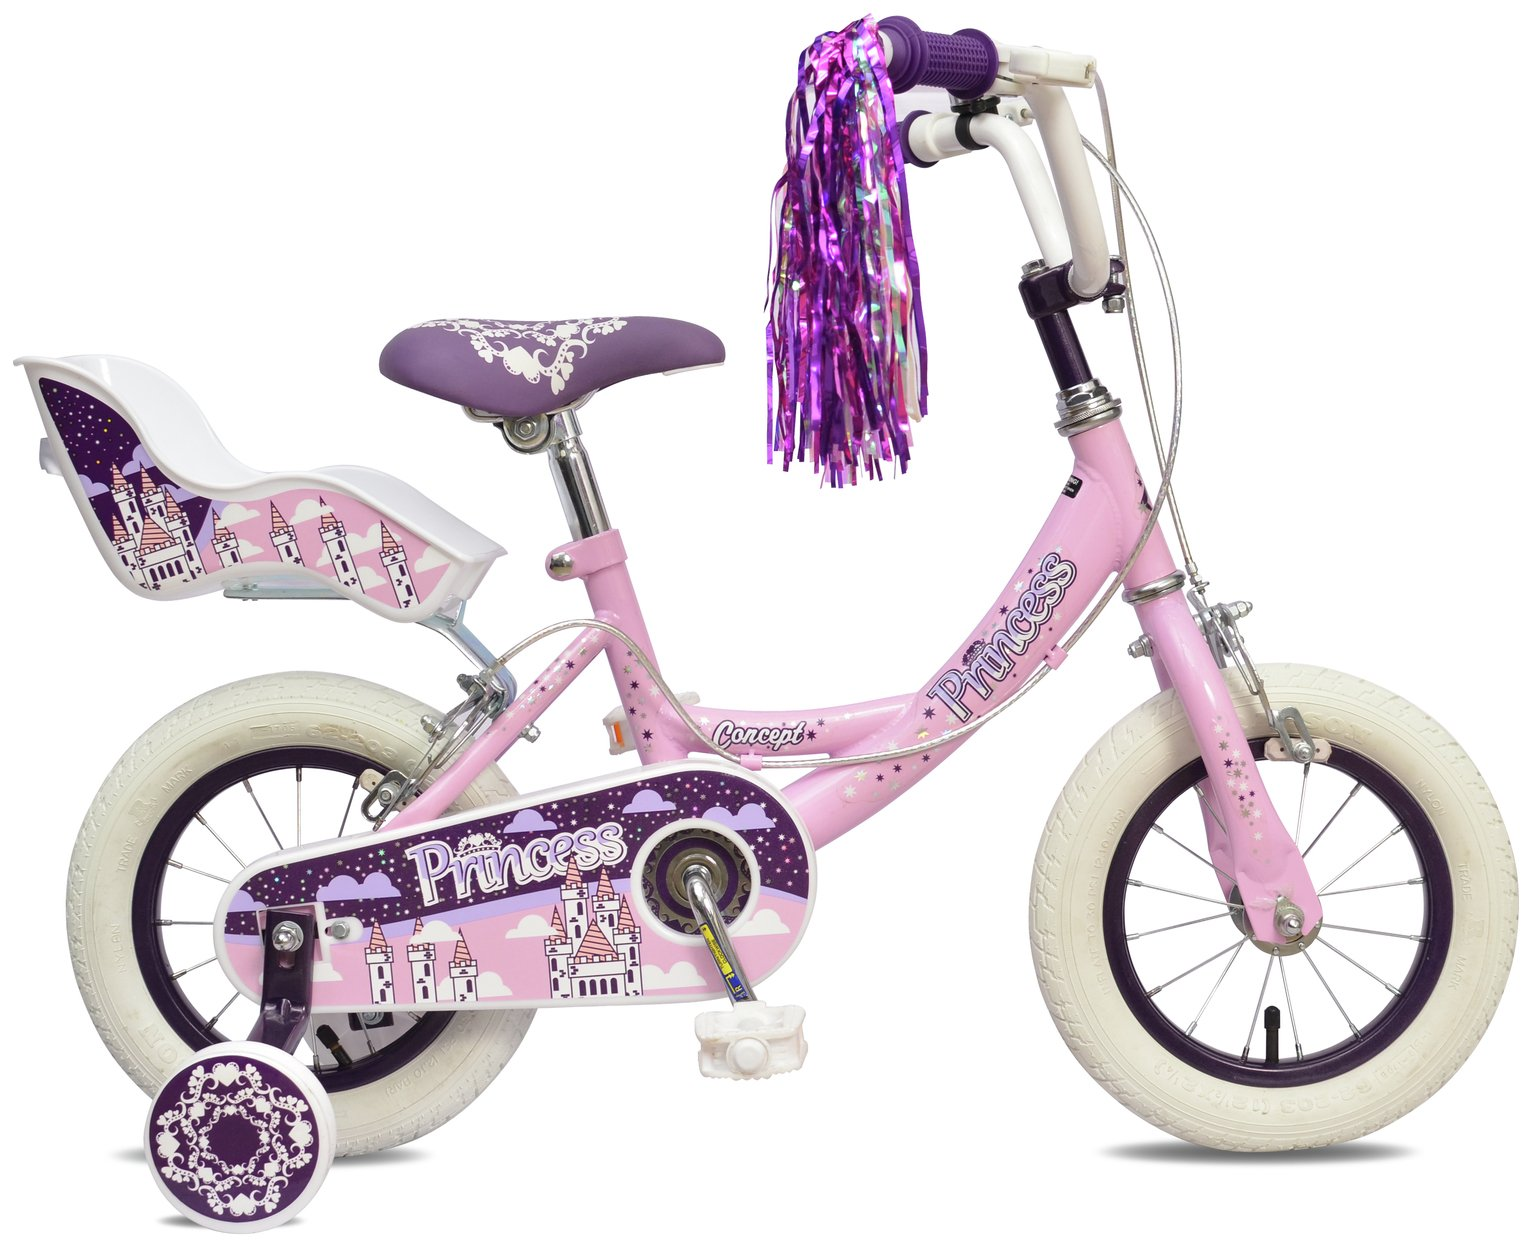 Image of Concept 8.5 Inch Kids Bike - Princess